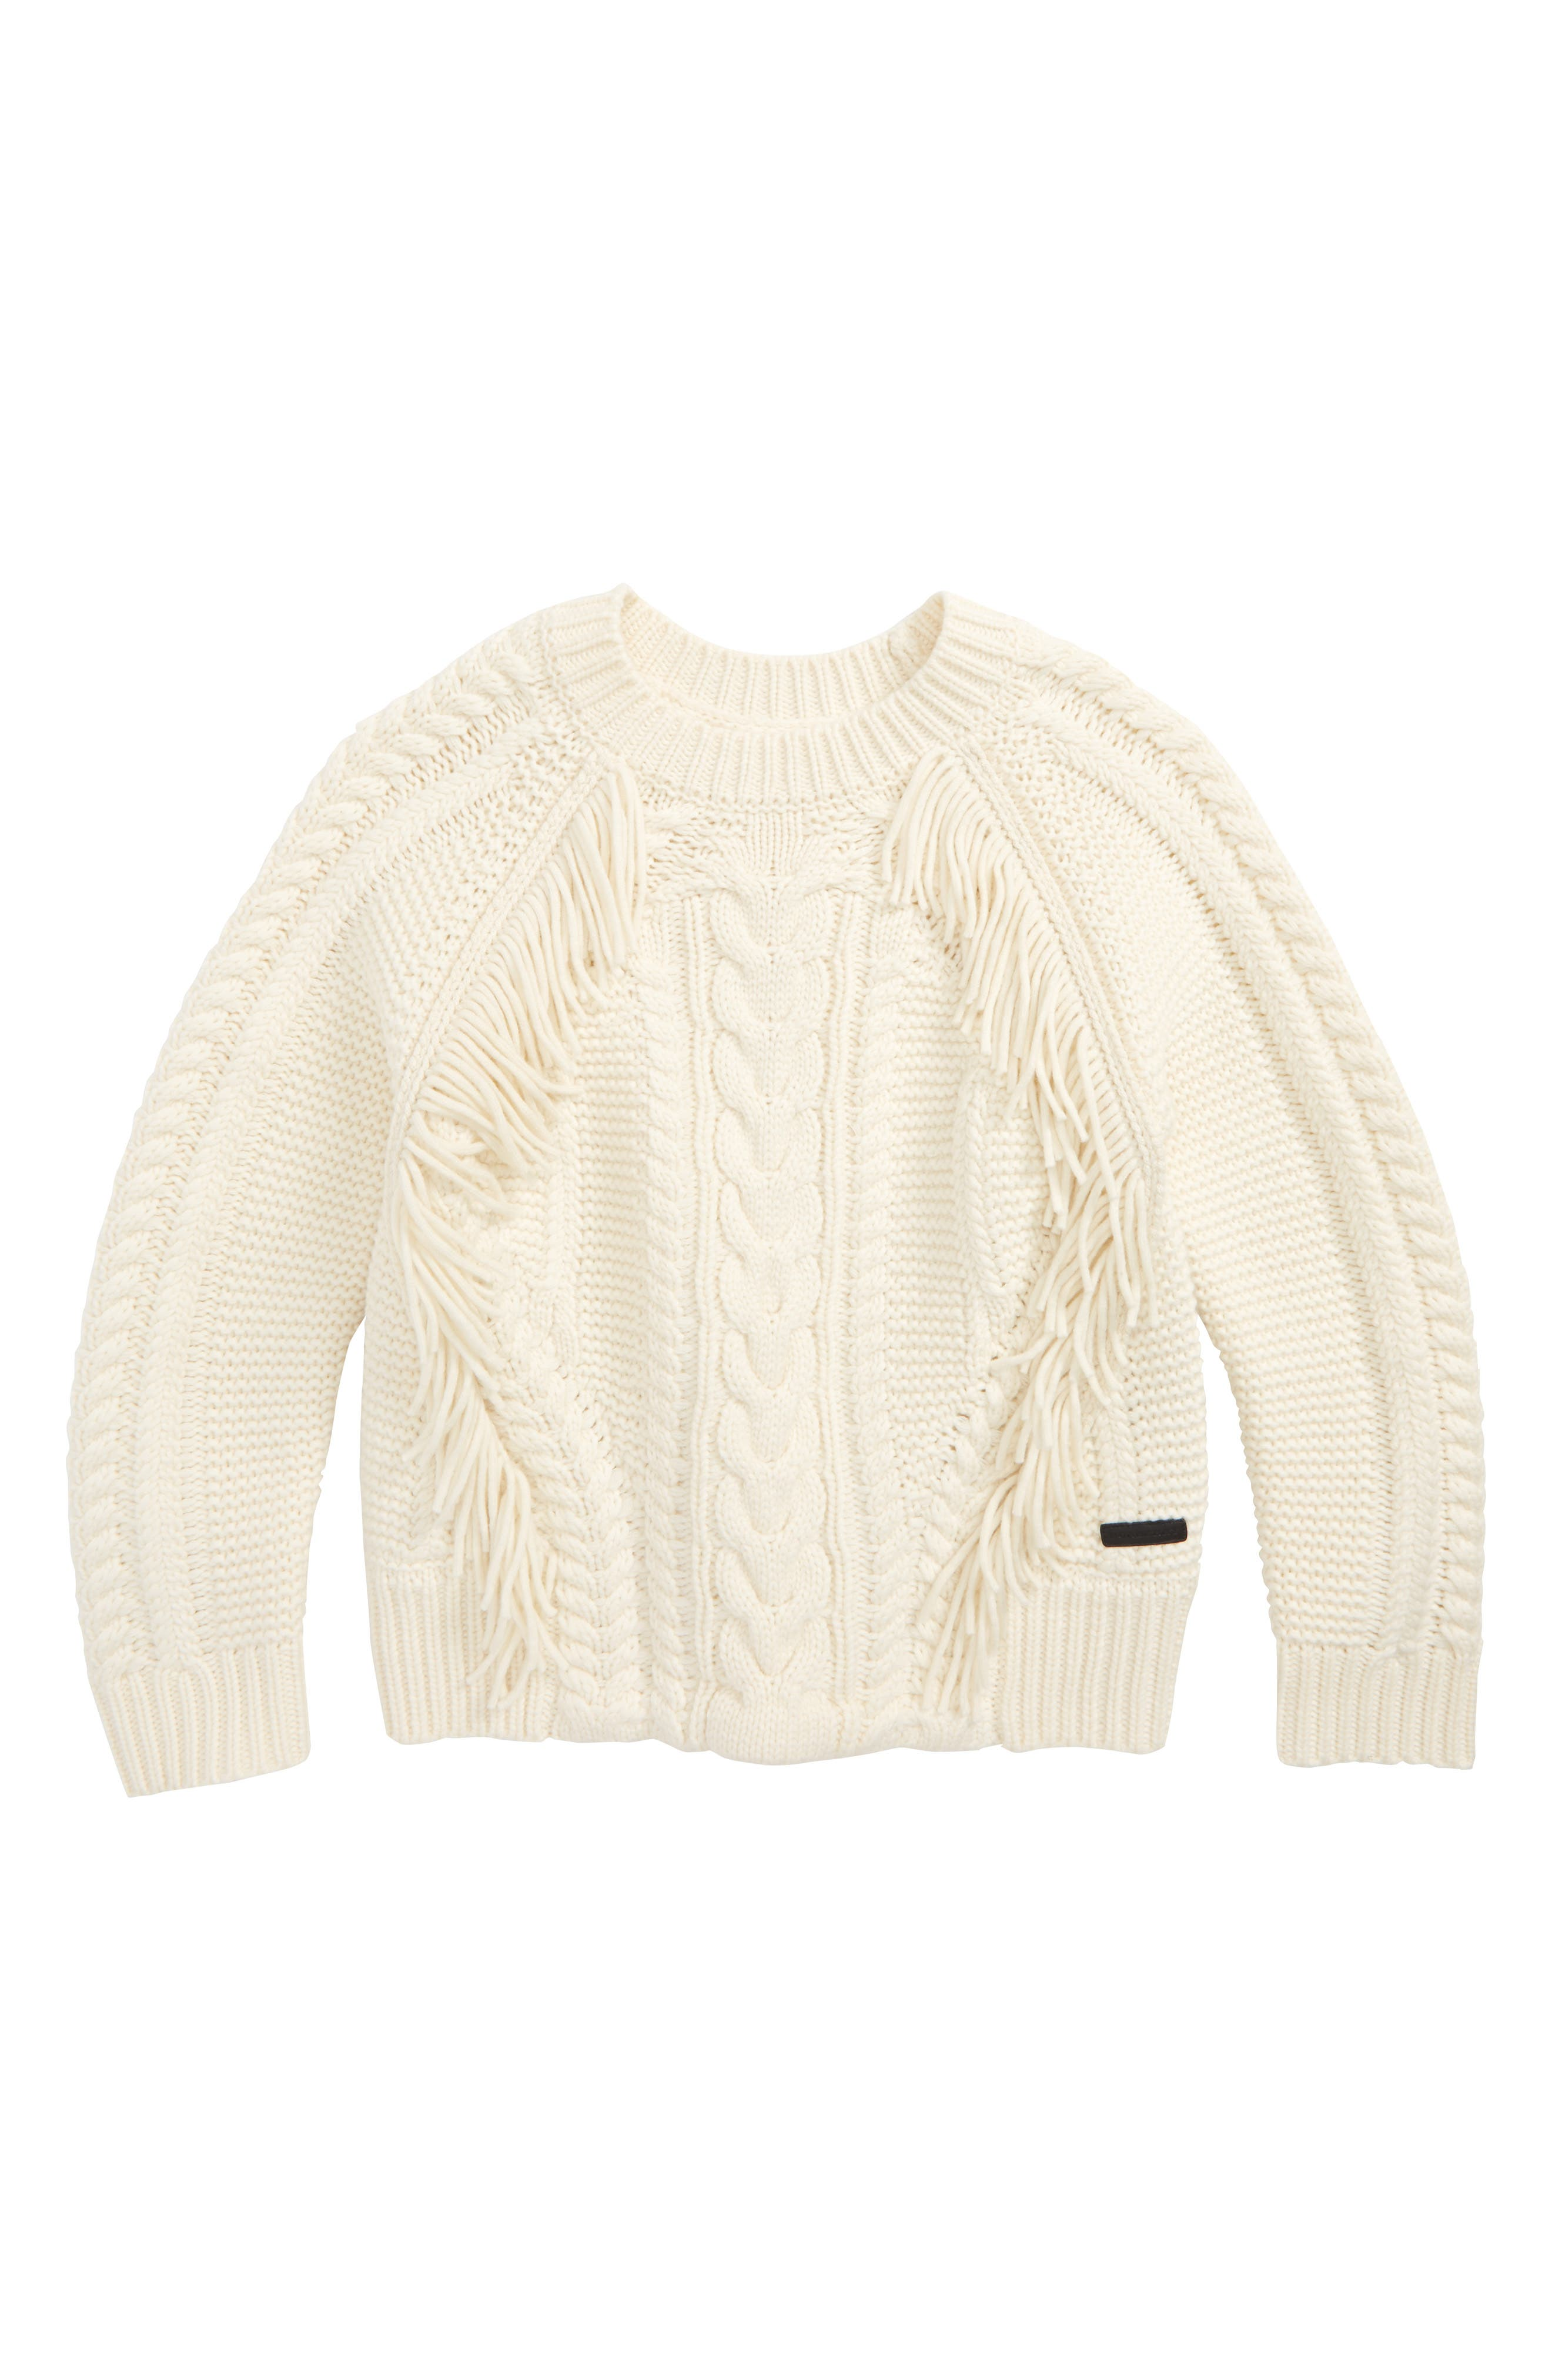 Natasia Cable Knit Sweater,                         Main,                         color, Natural White